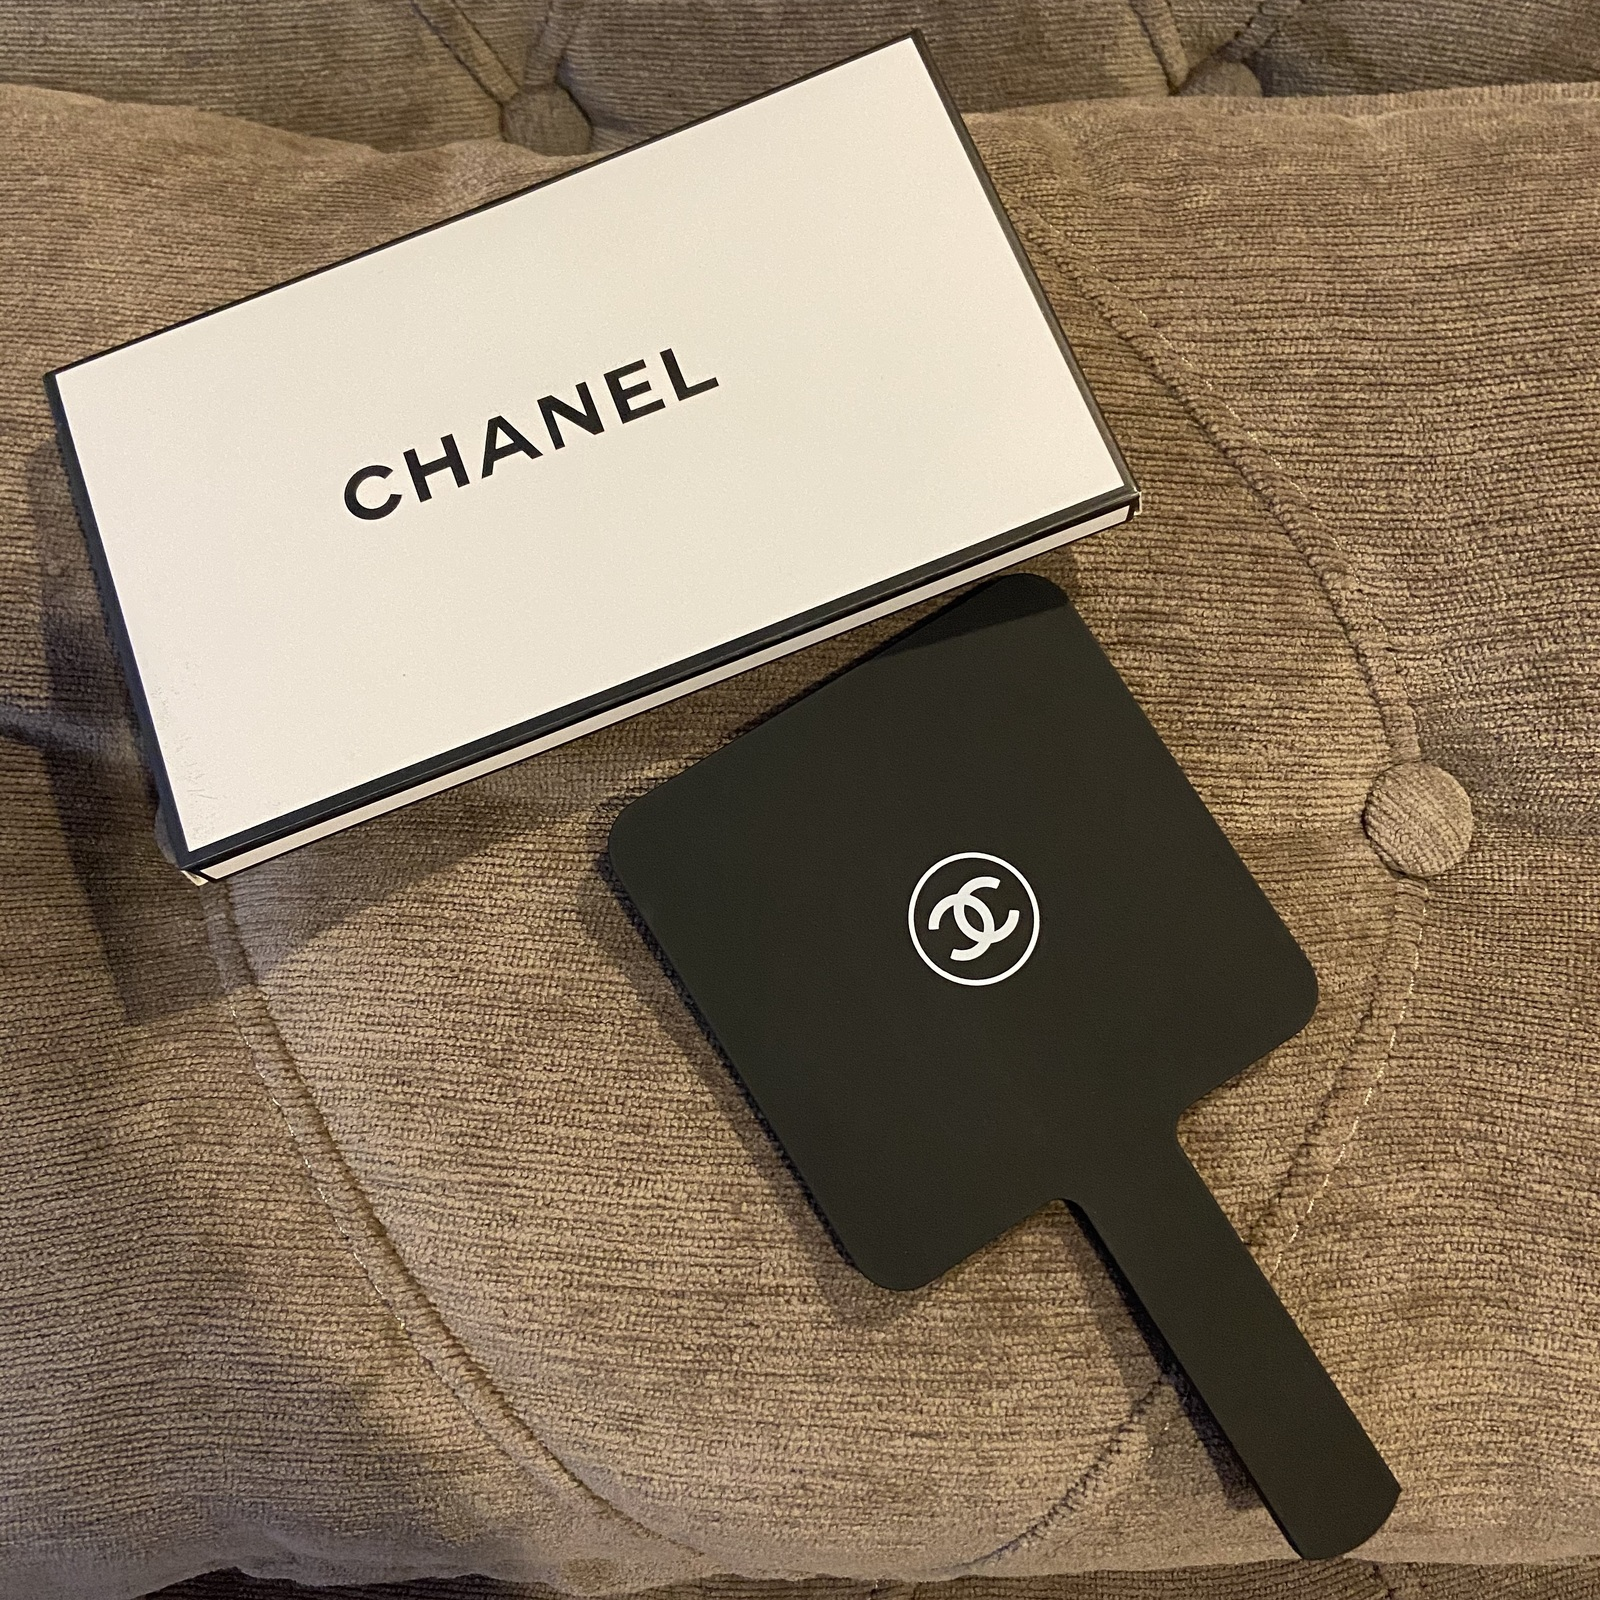 Chanel Mirror with Gift-box Set - $58.00